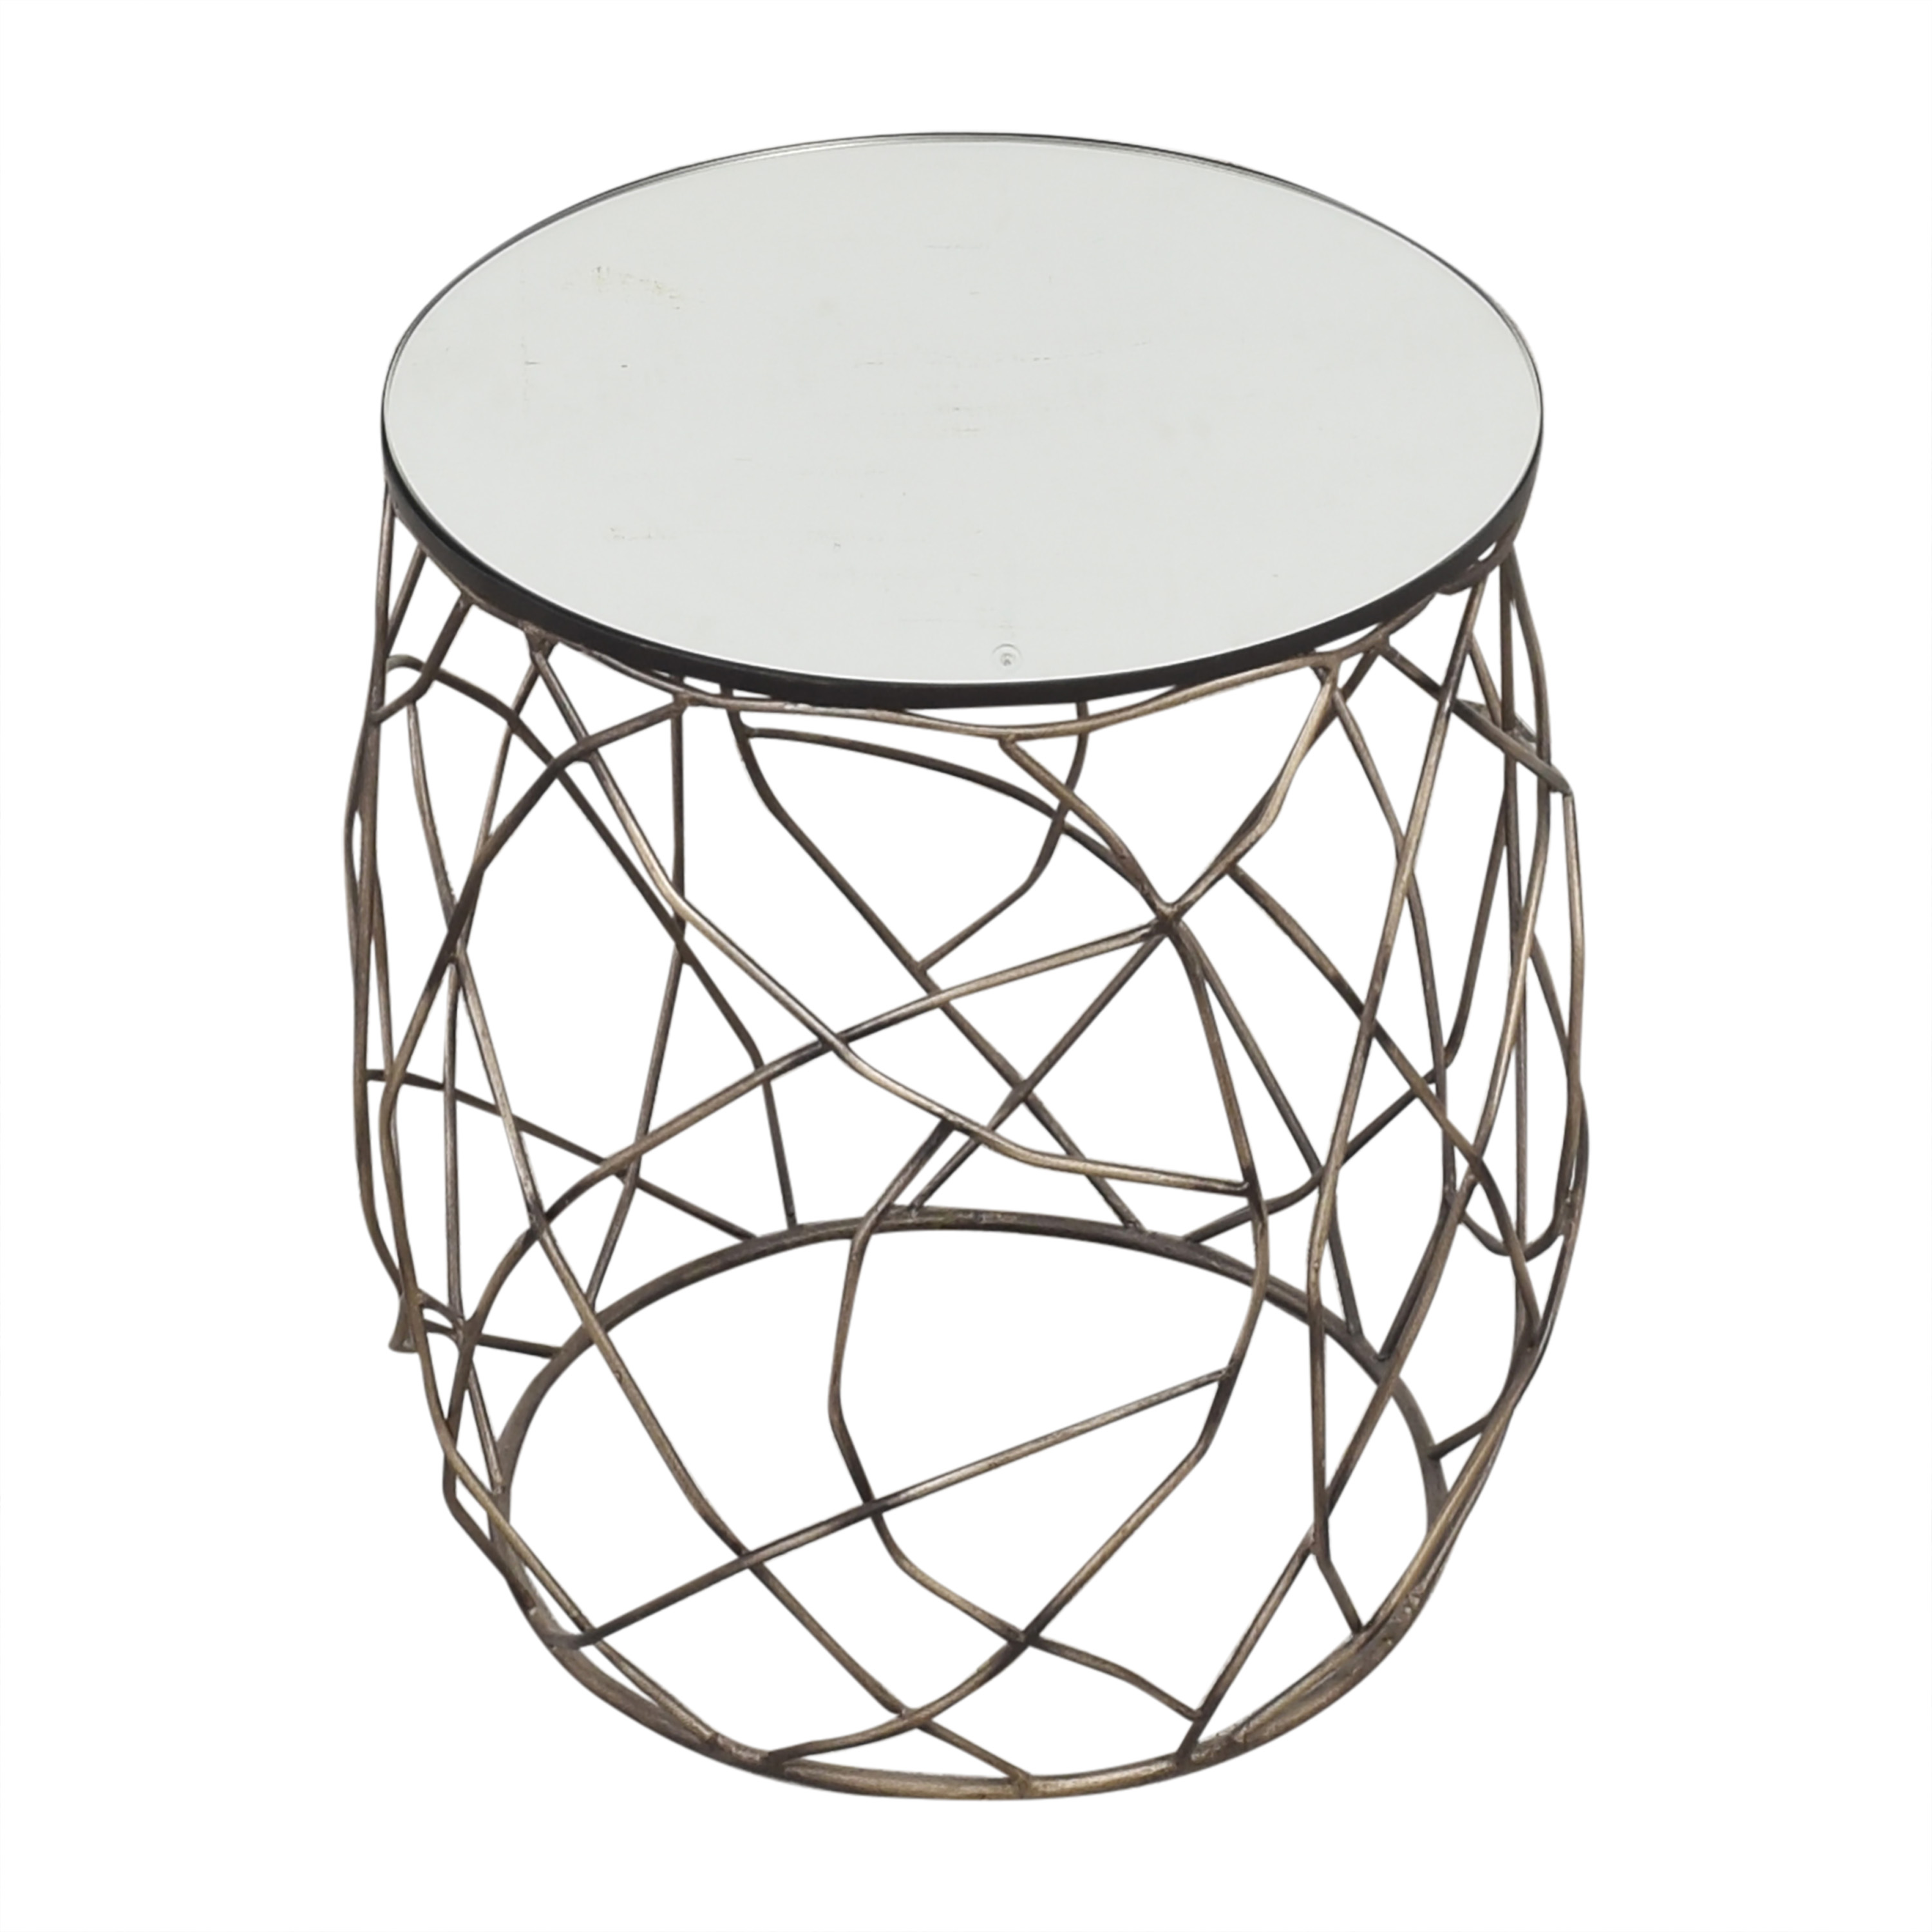 Horchow Horchow Rumi Openwork Side Table dimensions